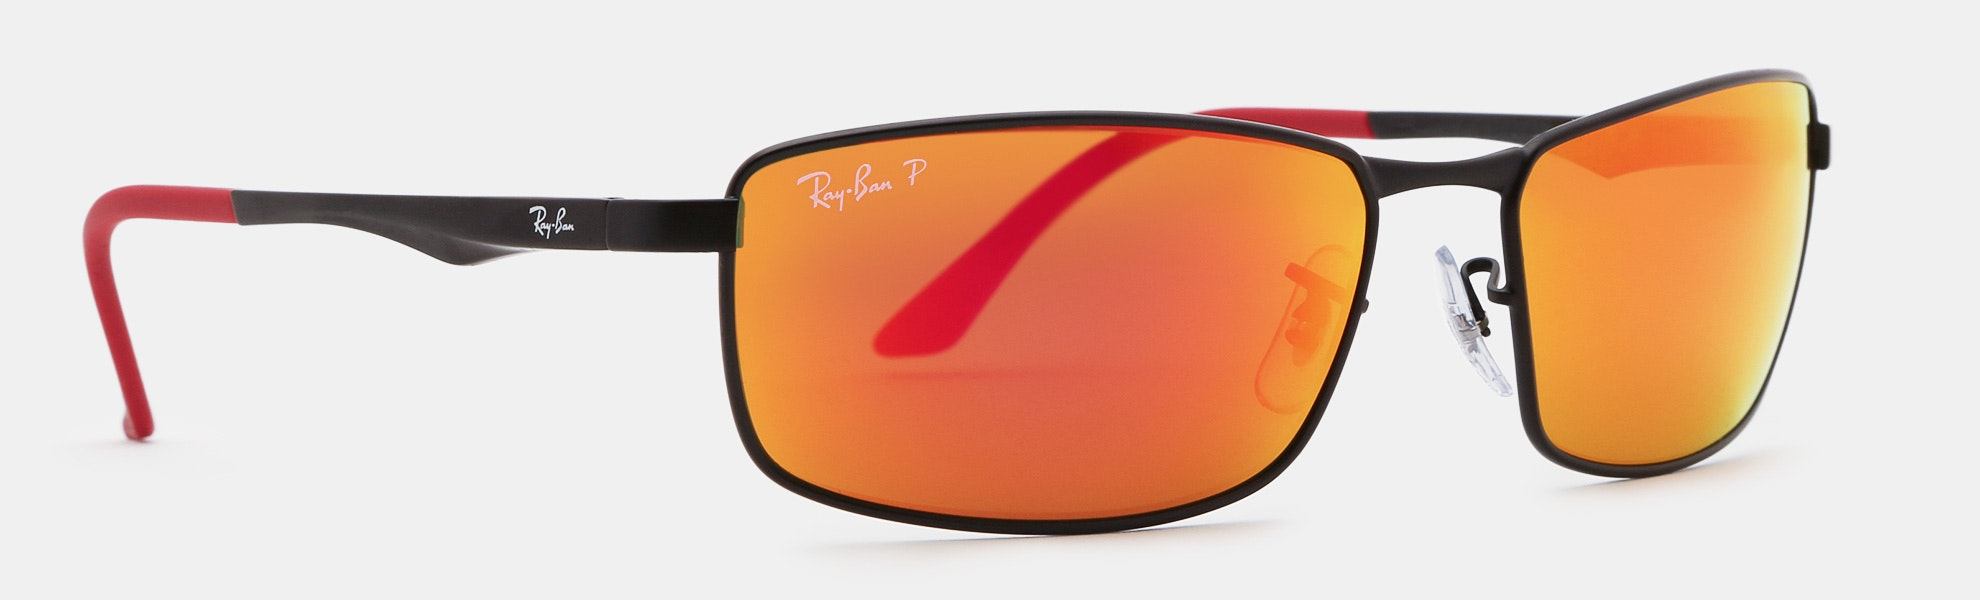 Ray-Ban RB3498 Polarized Sunglasses